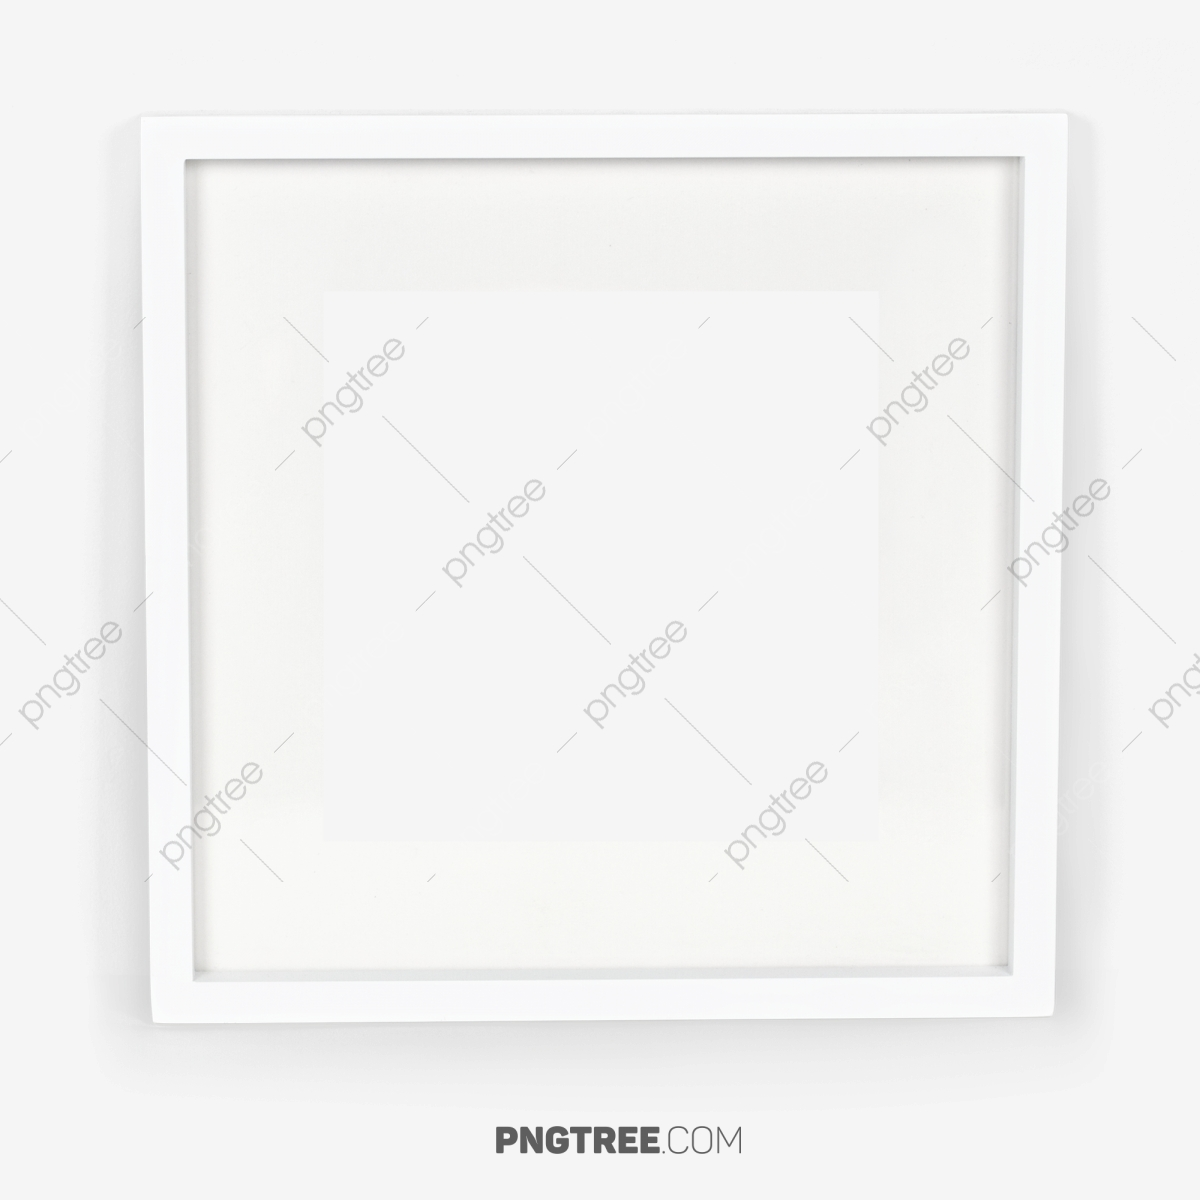 white Square Frame Easy To Use, White Square Frame, White, Square.